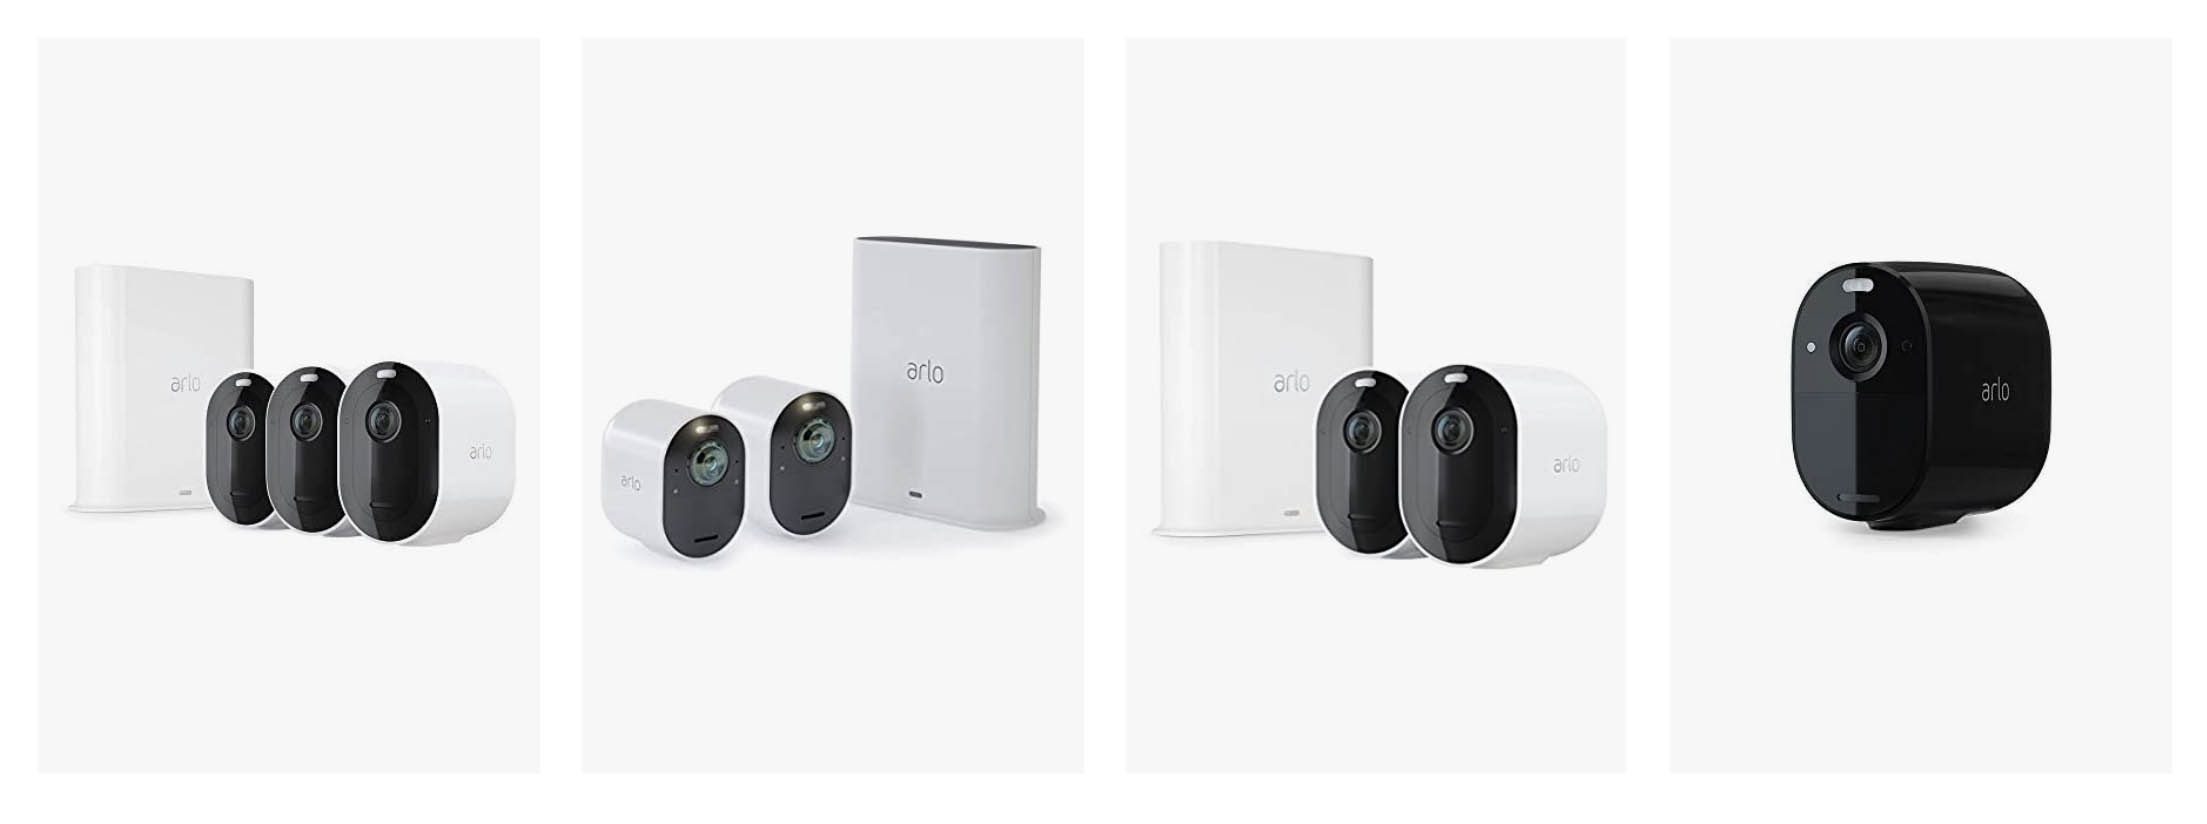 arlo security cameras 4